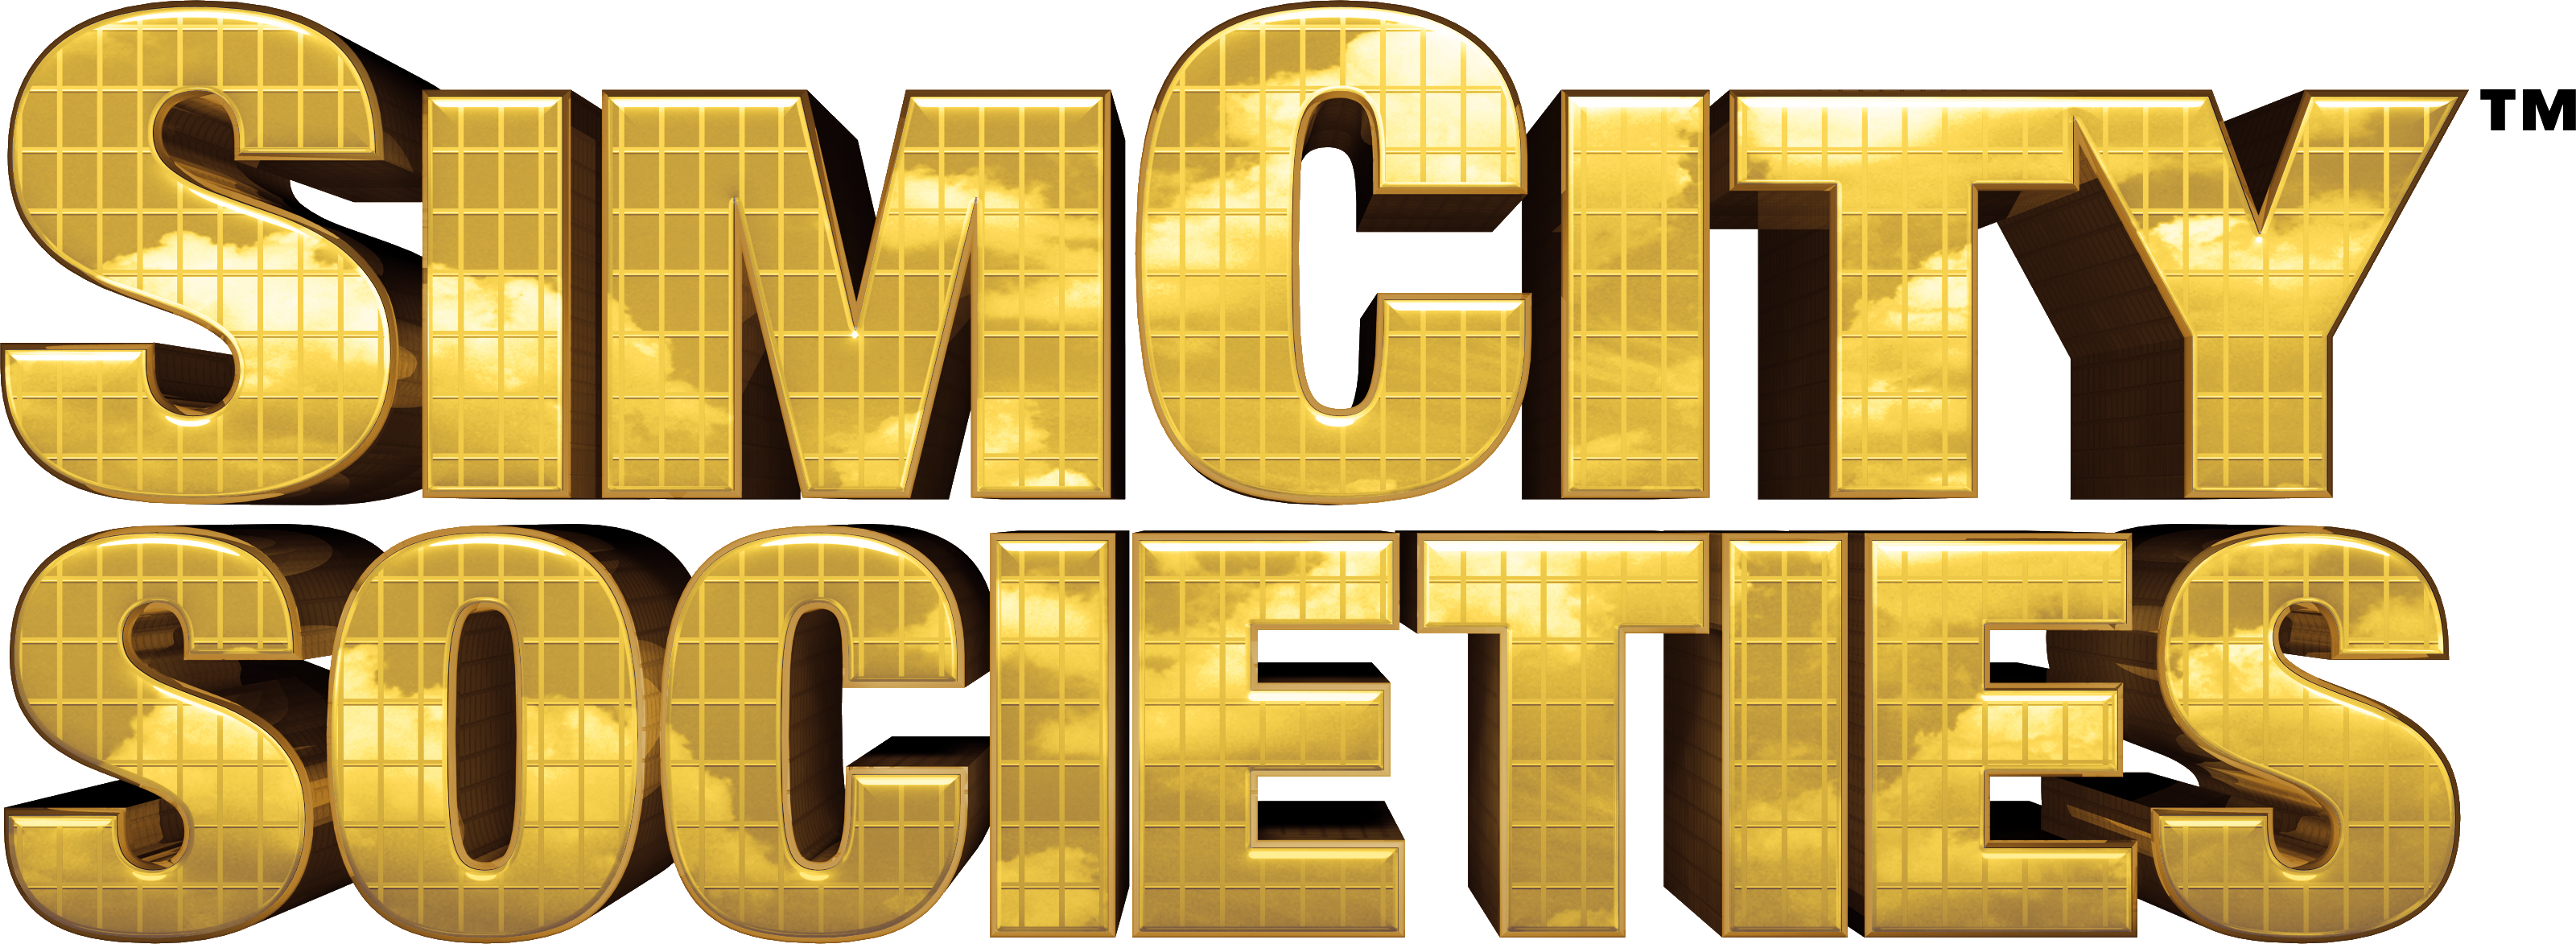 File:SimCity Societies logo.png